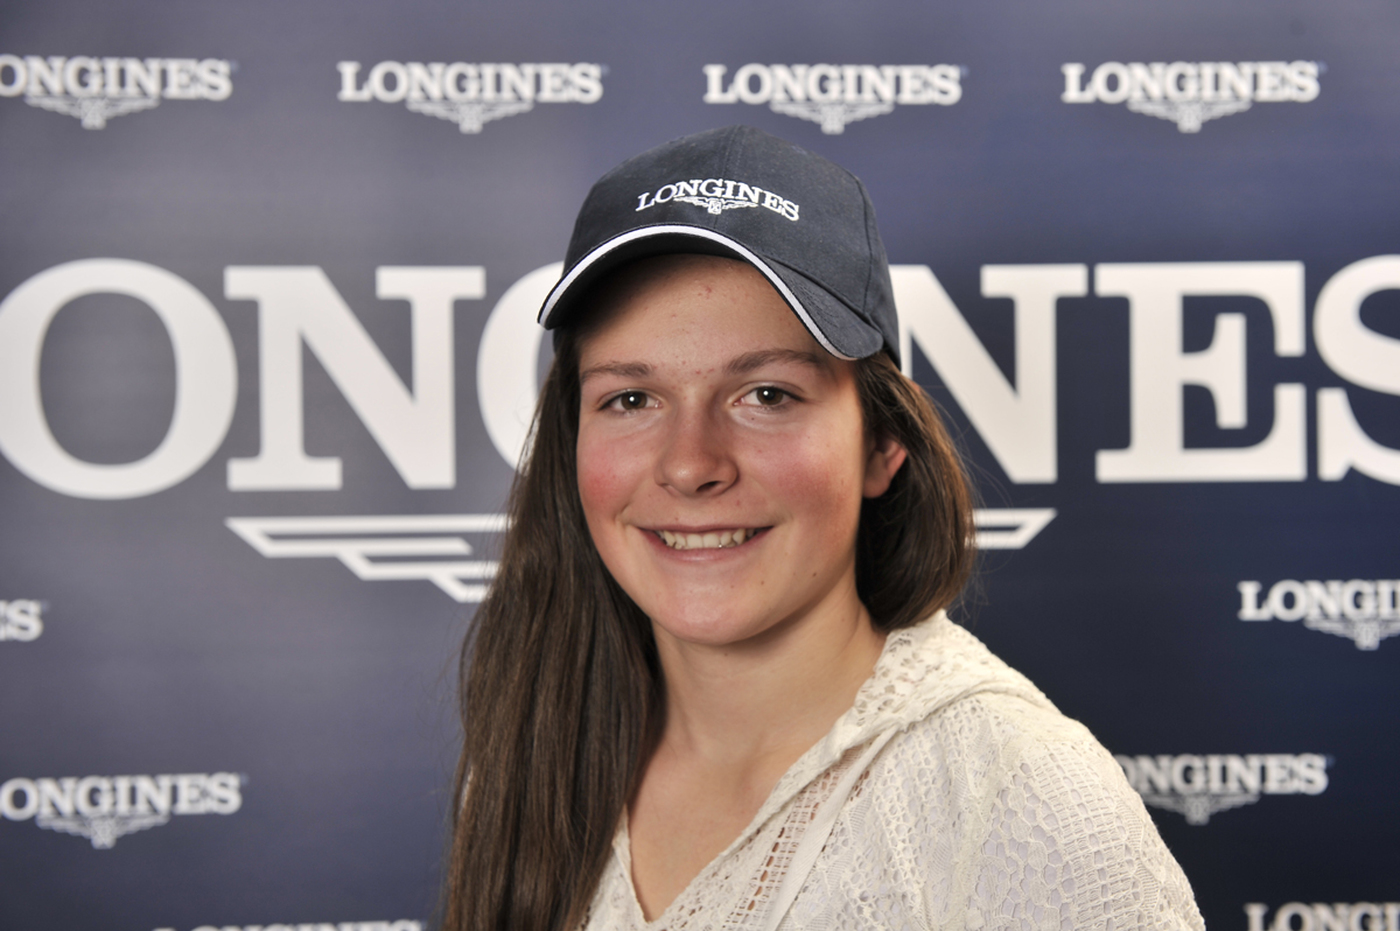 Longines Alpine Skiing Event: Second edition of the Longines Future Ski Champions – A successful 100% female competition in Val d'Isère 15